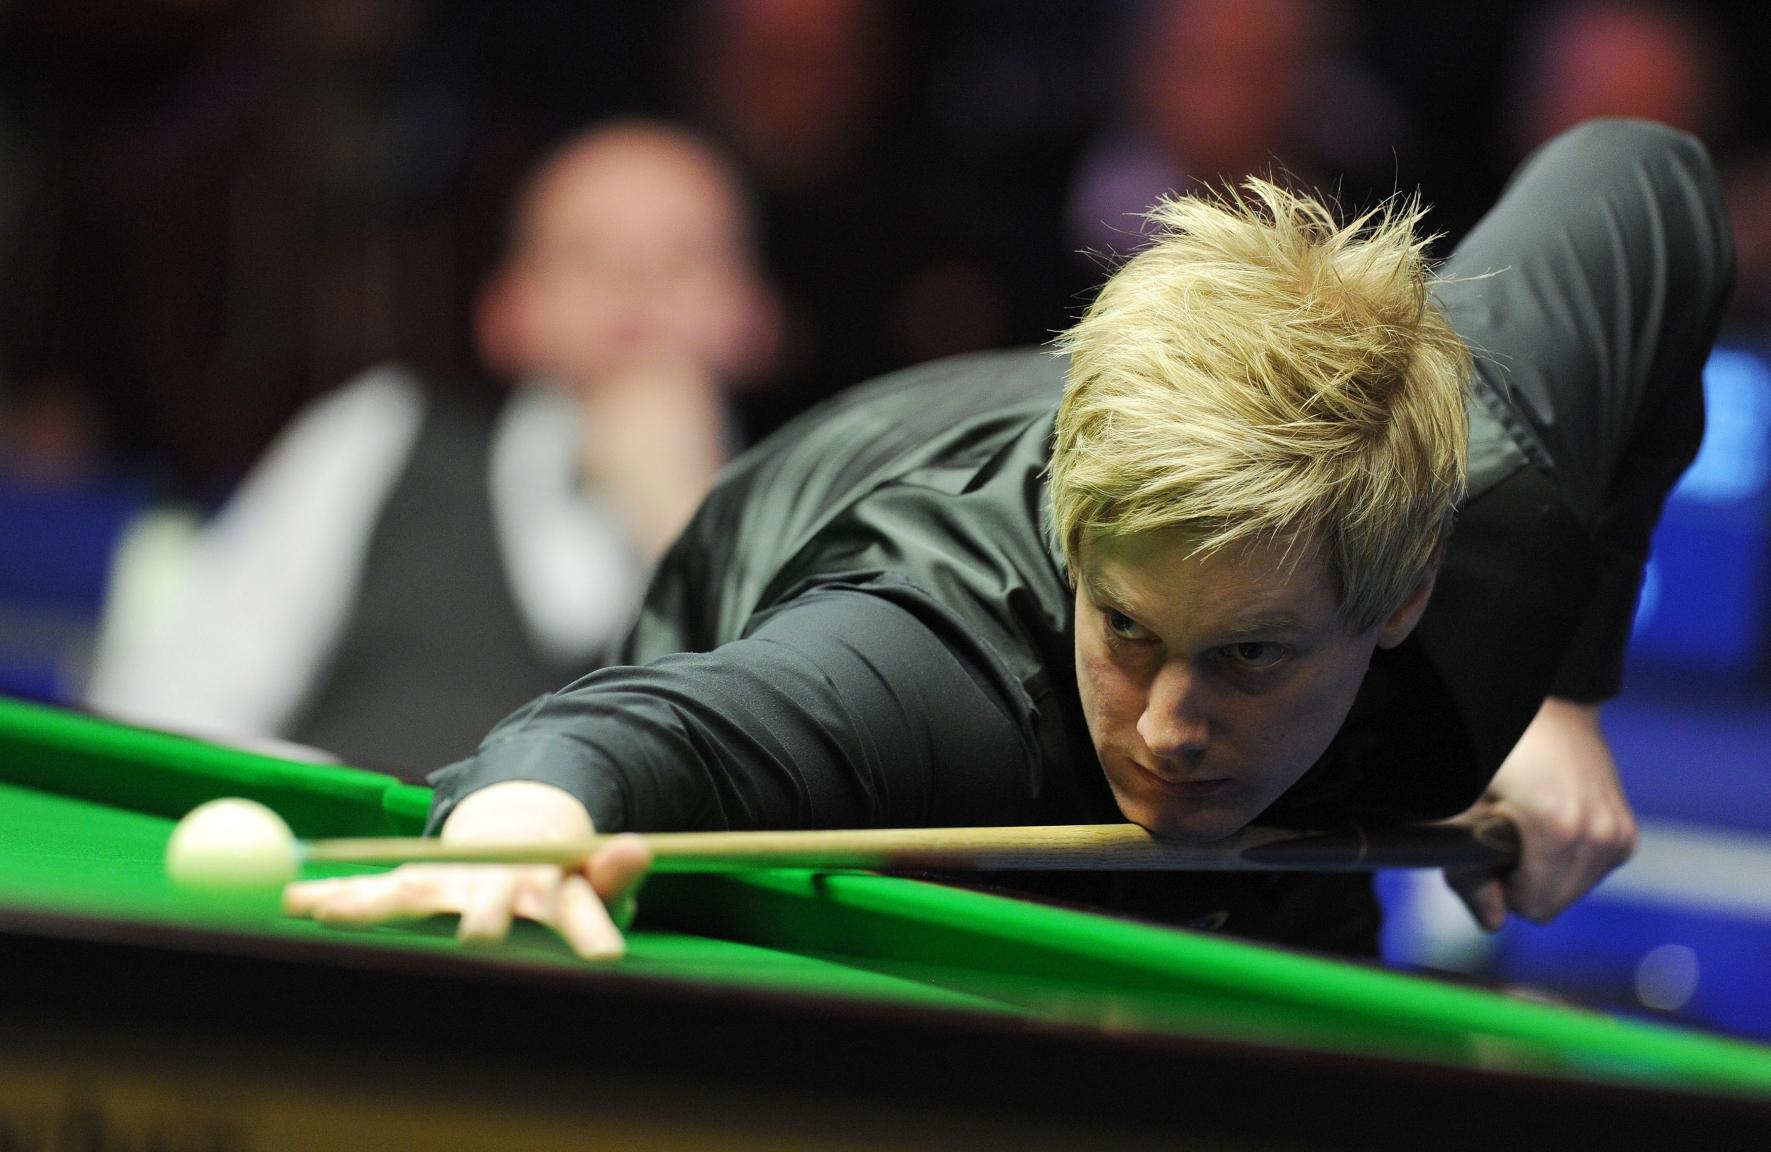 World number one and defending UK champion Neil Robertson has changed his eating habits to extend his time at the table